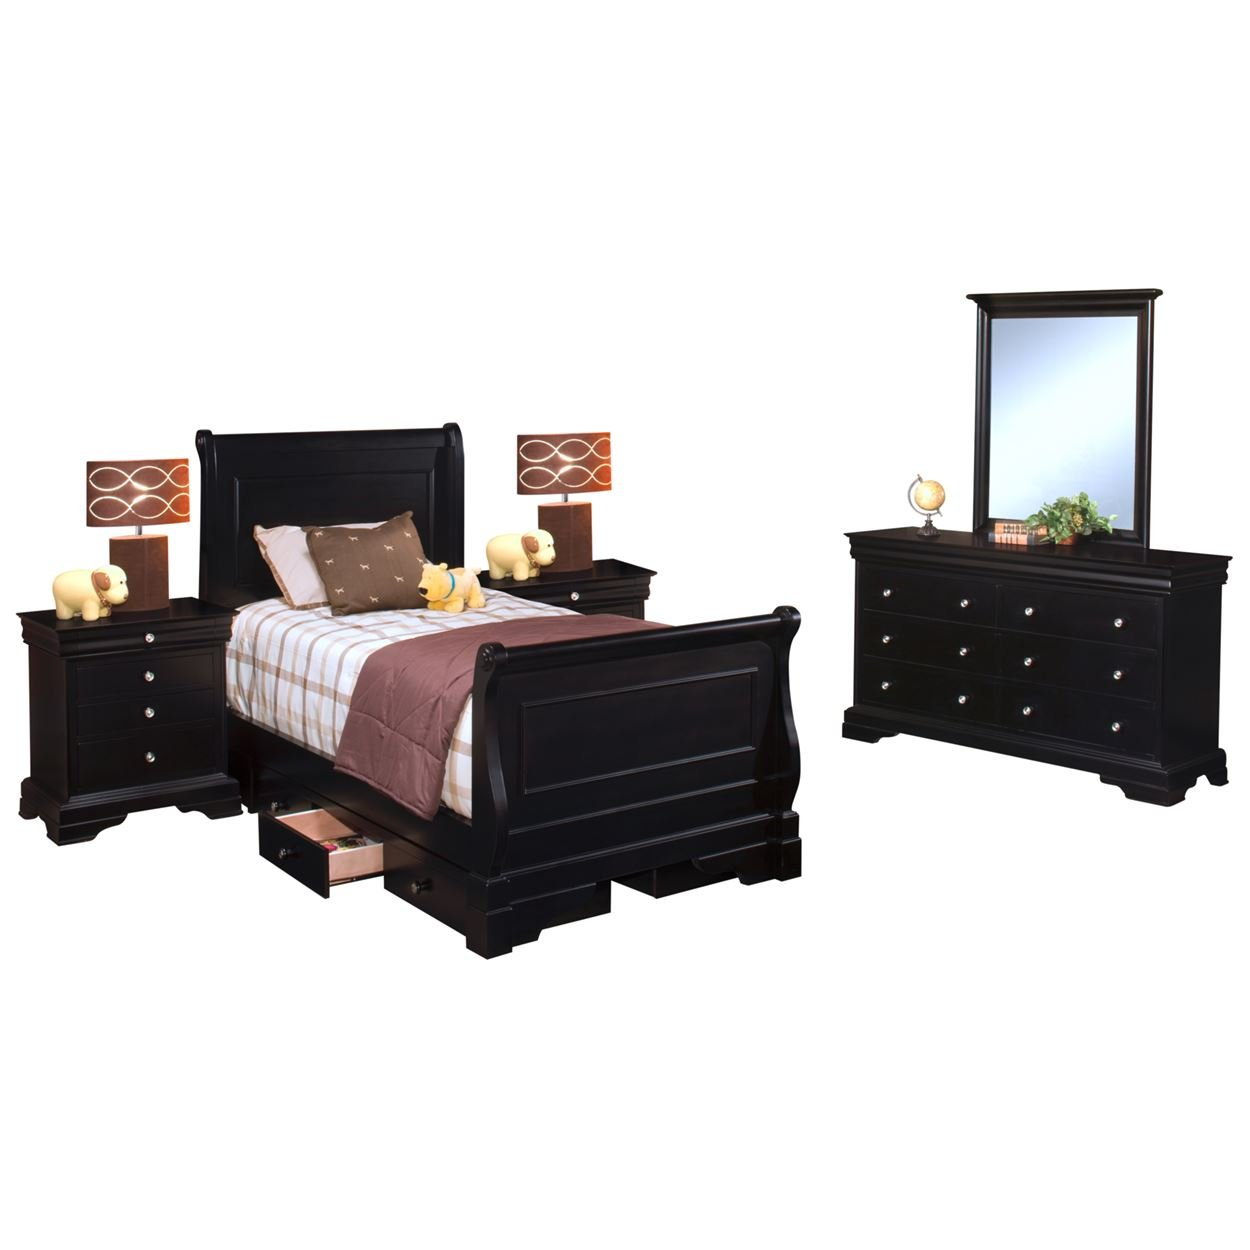 Black Hills Youth Sleigh 5 Piece Storage Twin Bed, 2 Nightstand, Dresser & Mirror in Black